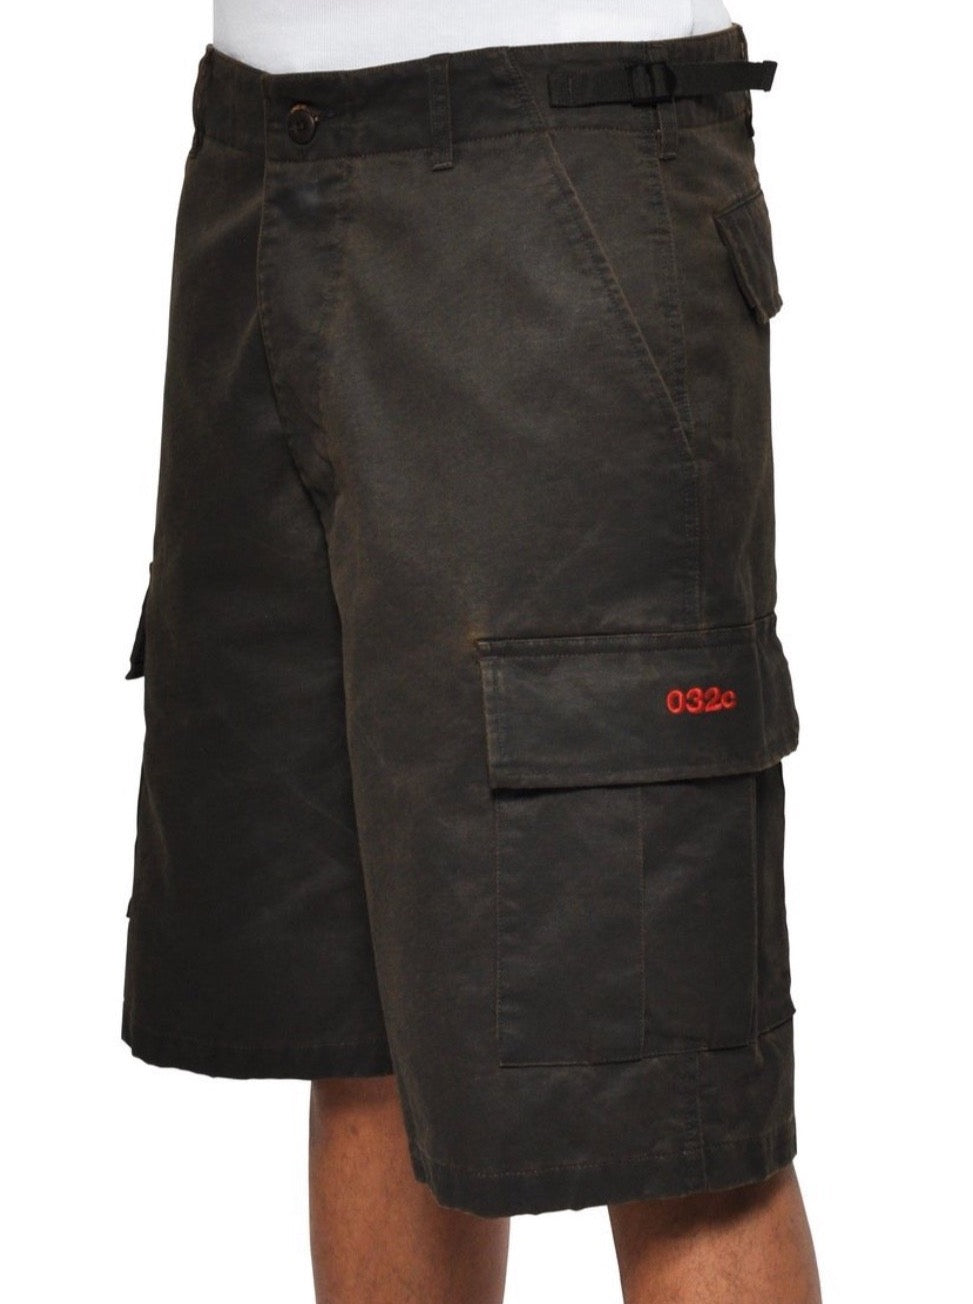 CARGO SHORTS WITH LOGO EMBROIDERY